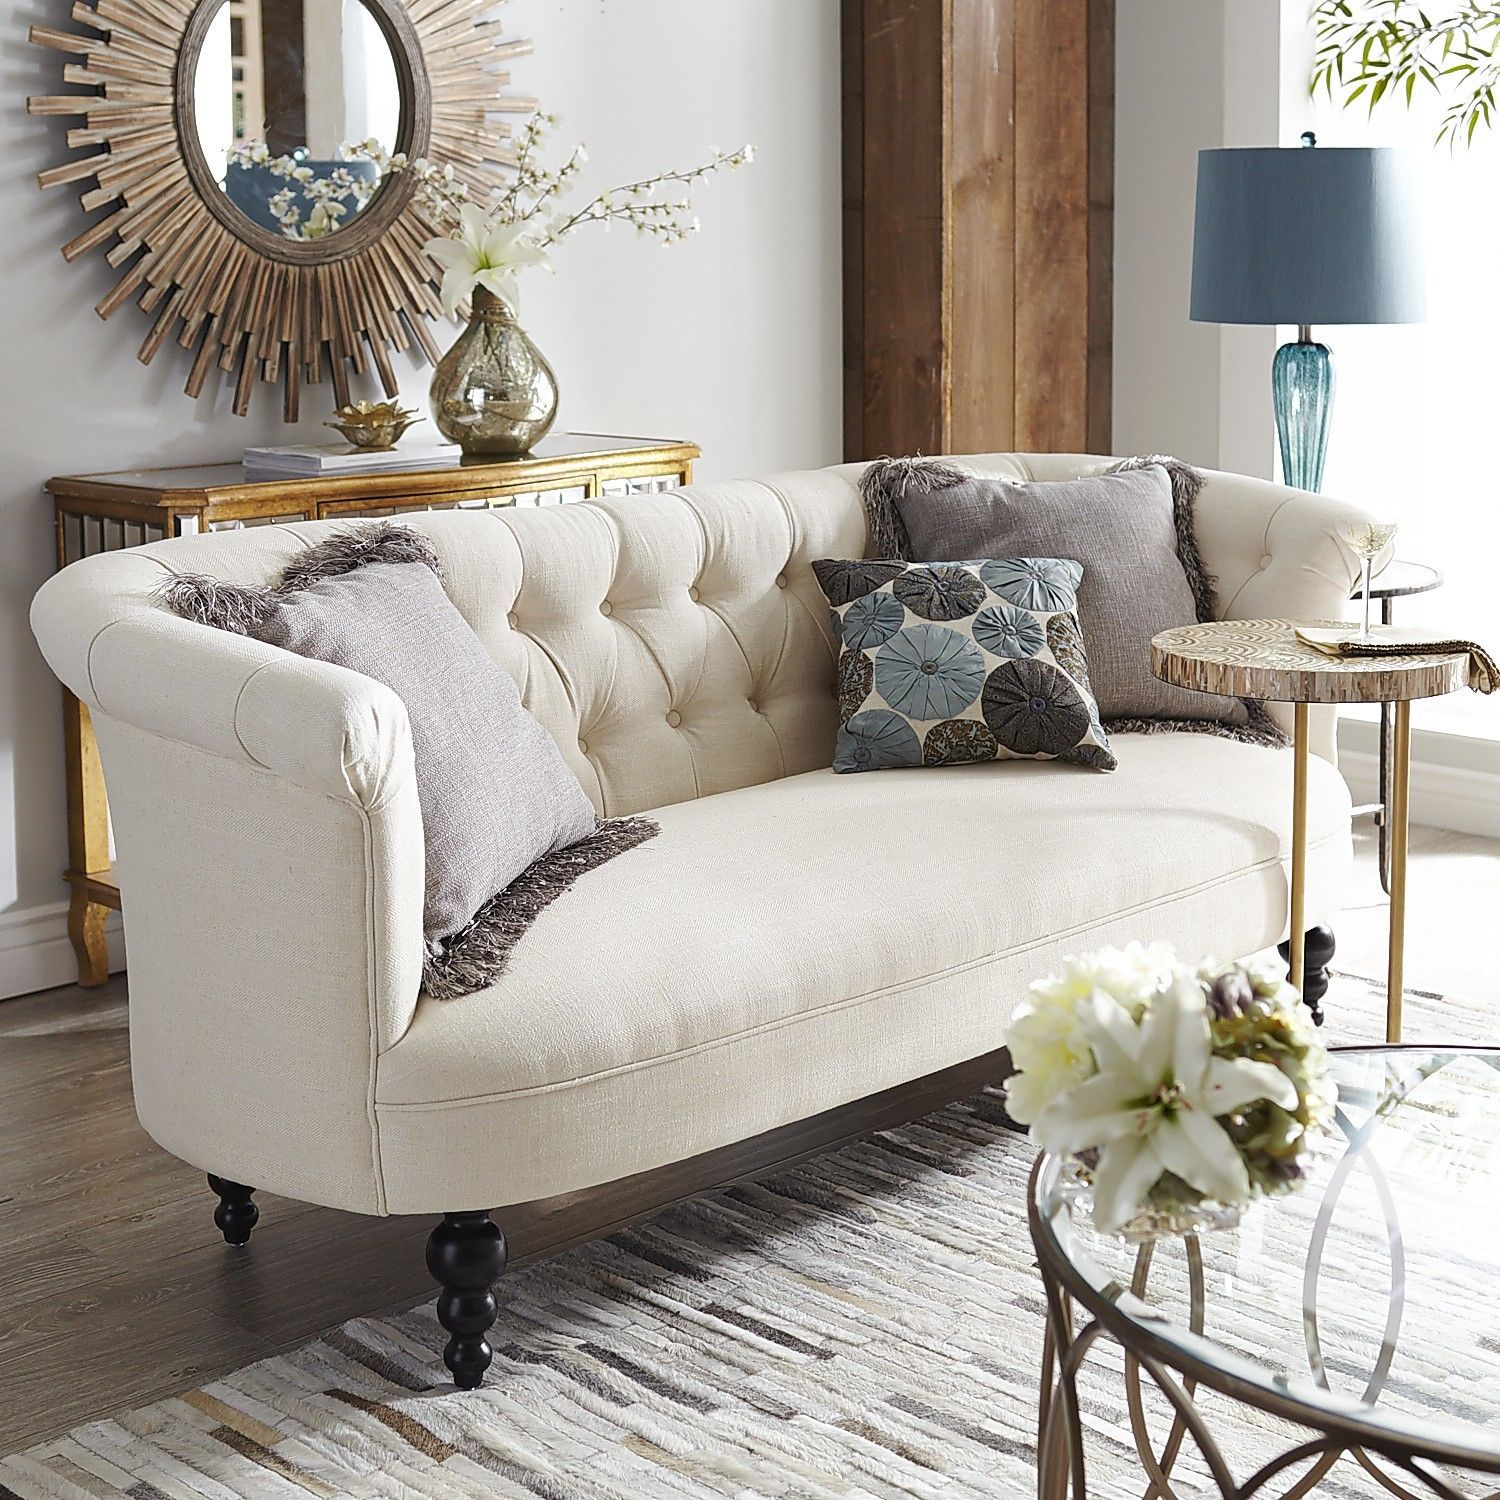 Colette Parchment Ivory Sofa | Chesterfield, Arch and Arms